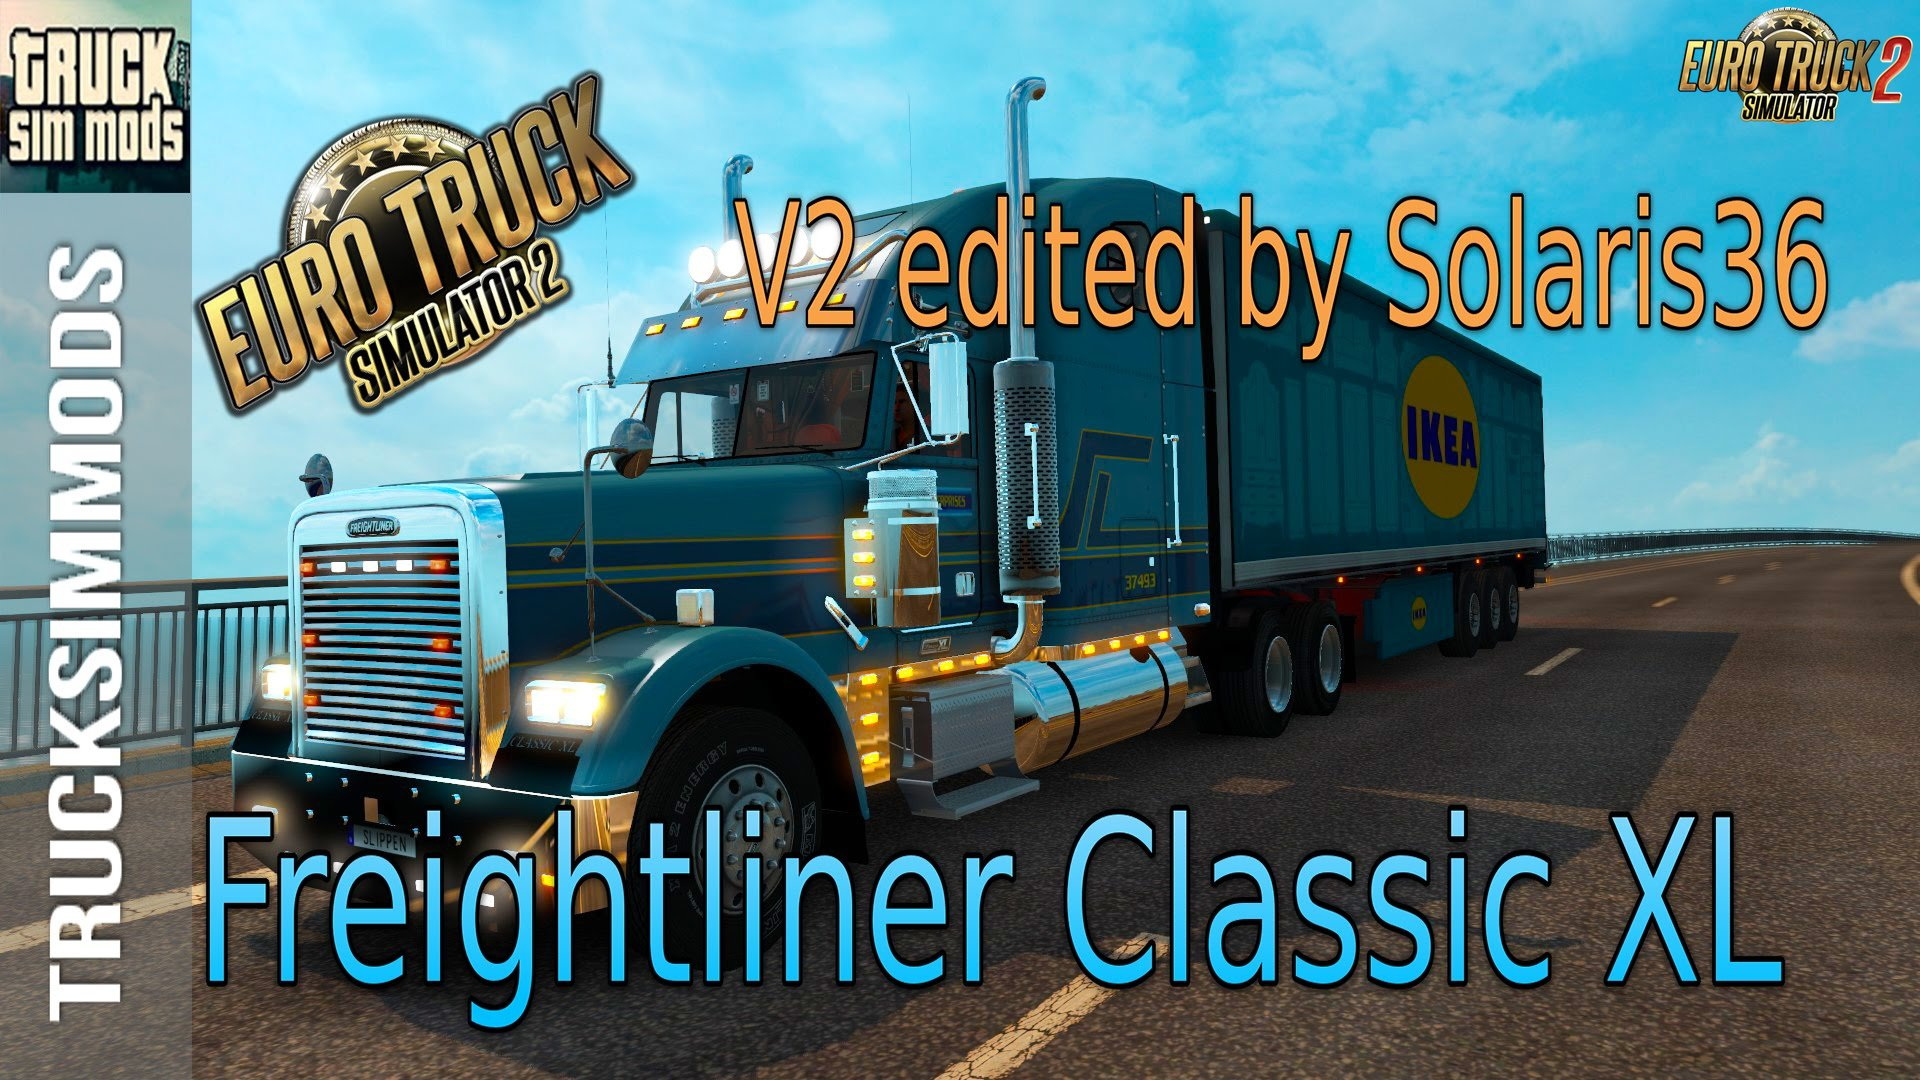 Freightliner Classic XL + Interior v2.1 by Solaris36 (1.26.x) for ETS 2